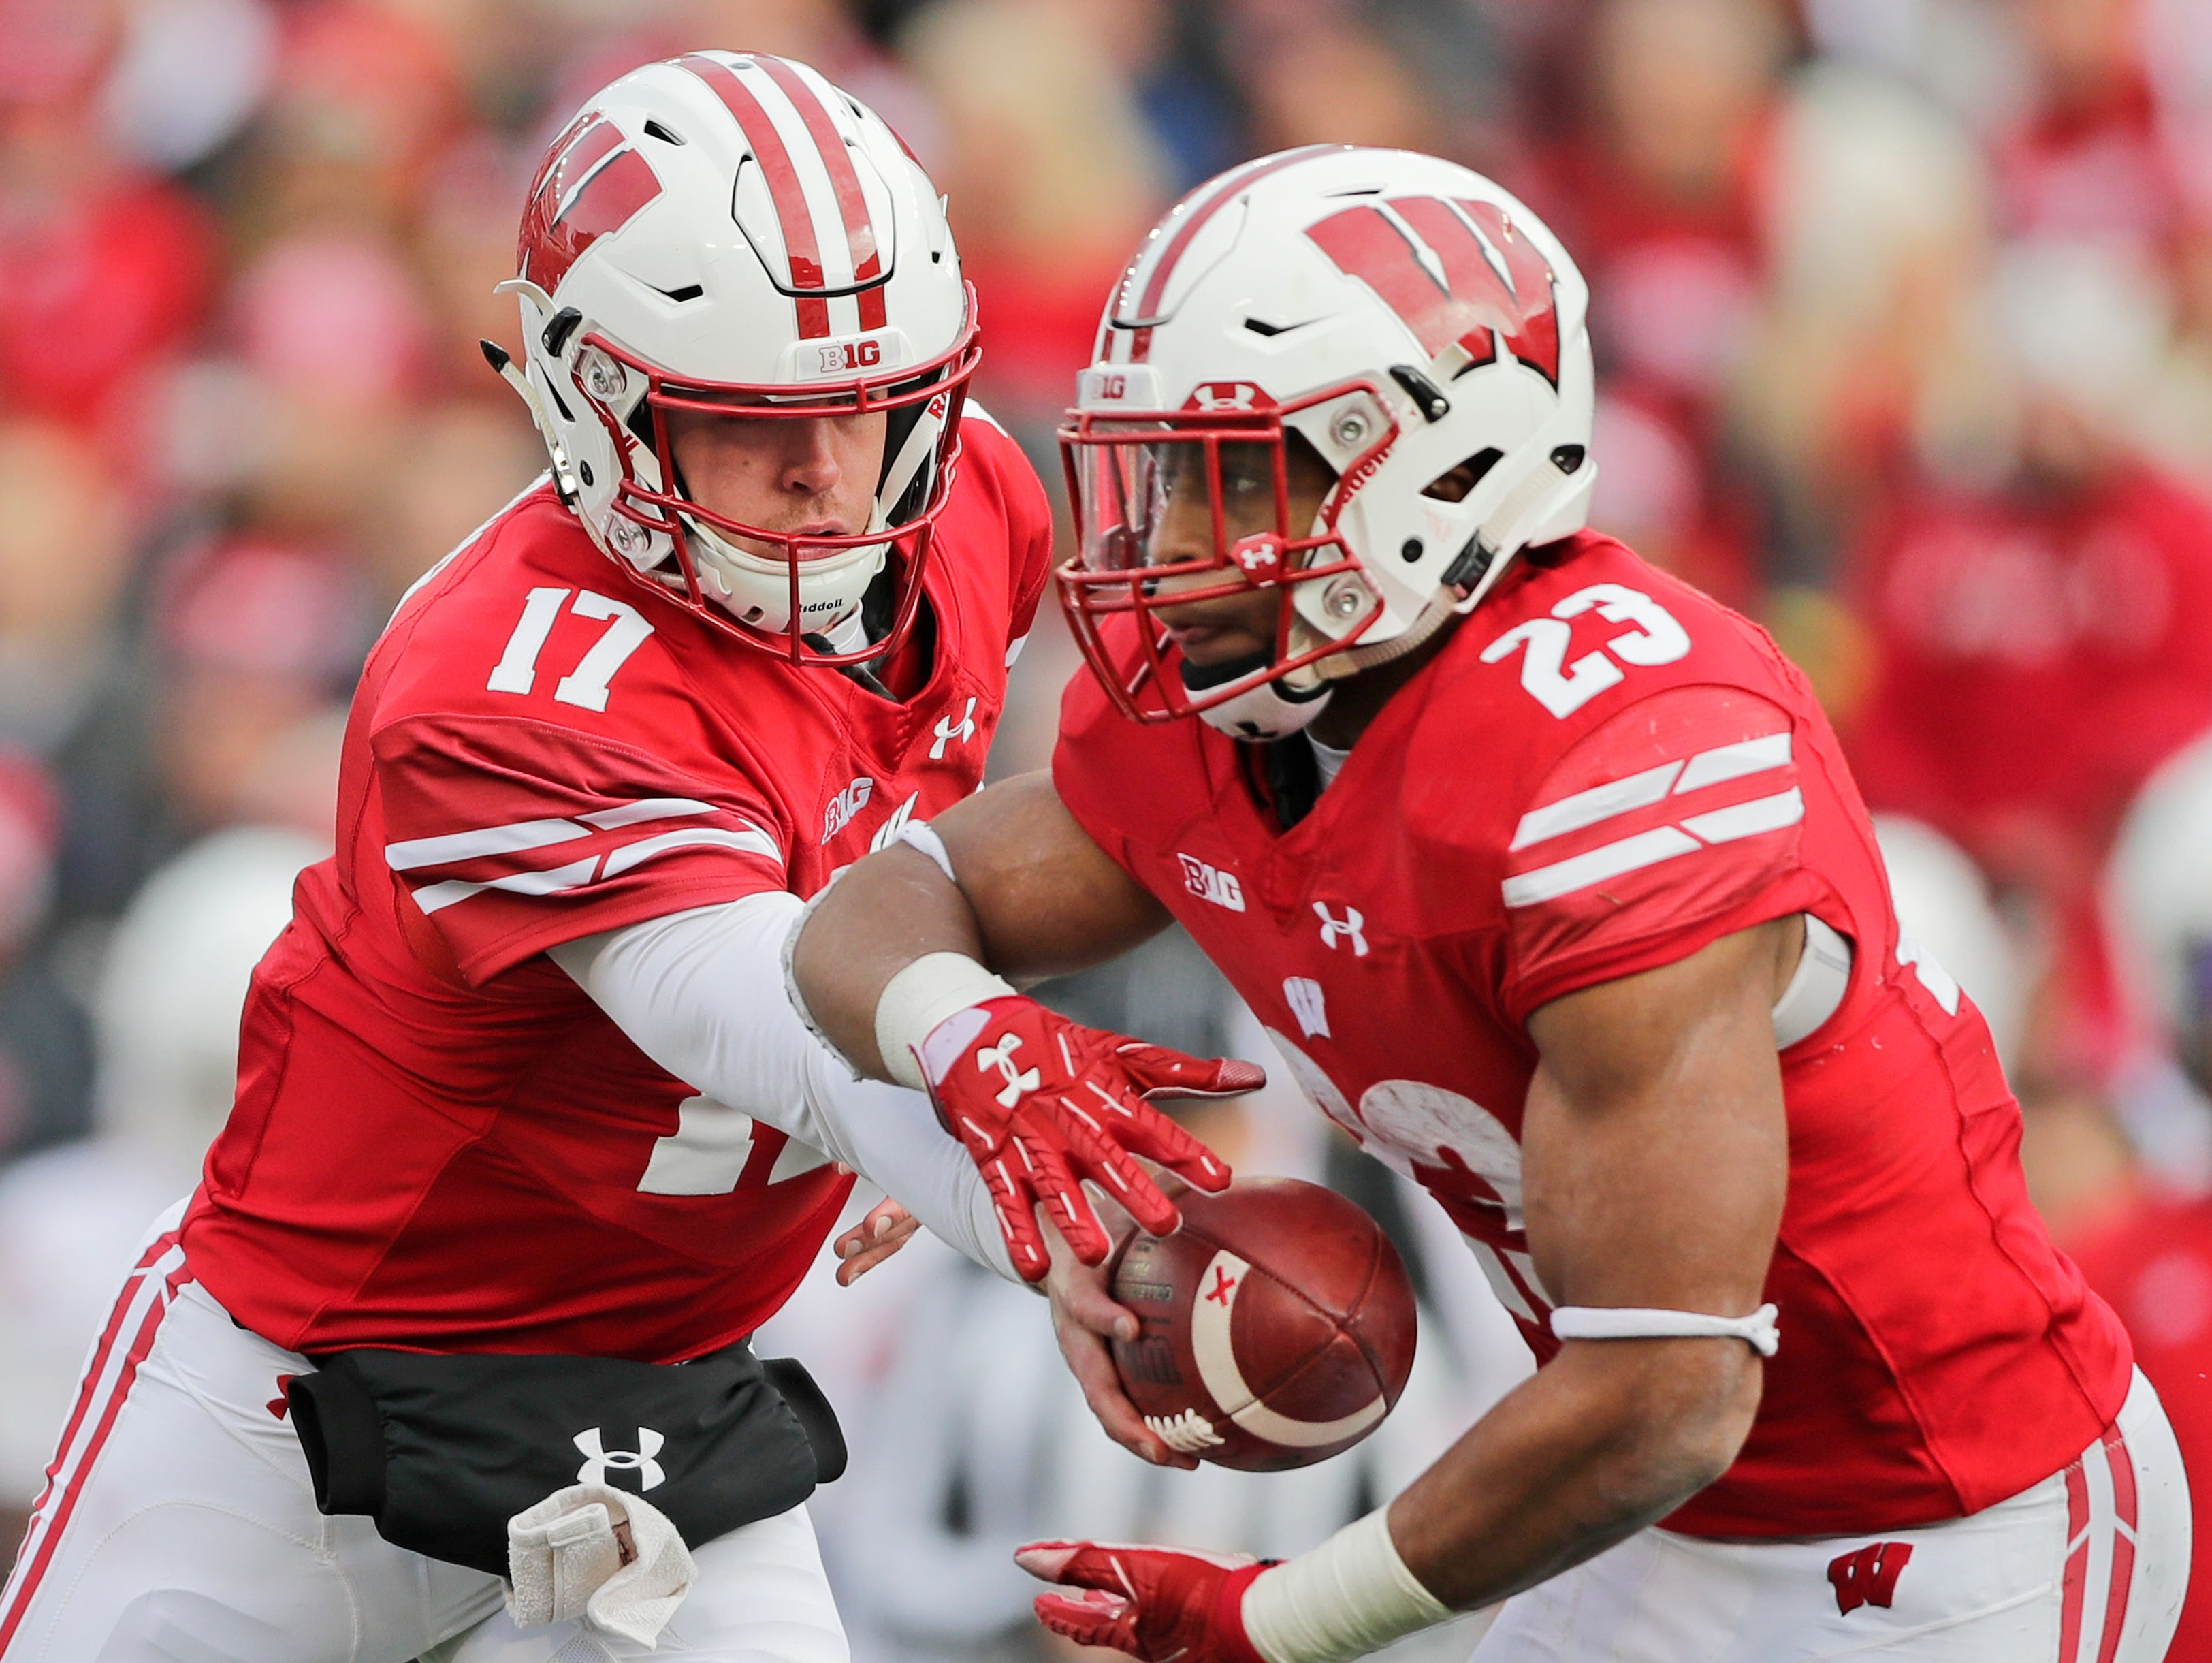 Wisconsin Badgers quarterback Jack Coan (17) hands off the ball to Wisconsin Badgers running back Jonathan Taylor (23) in the third quarter against the Rutgers Scarlet Knights in a Big Ten football game at Camp Randall Stadium on Saturday, November 3, 2018 in Madison, Wis.Adam Wesley/USA TODAY NETWORK-Wisconsin